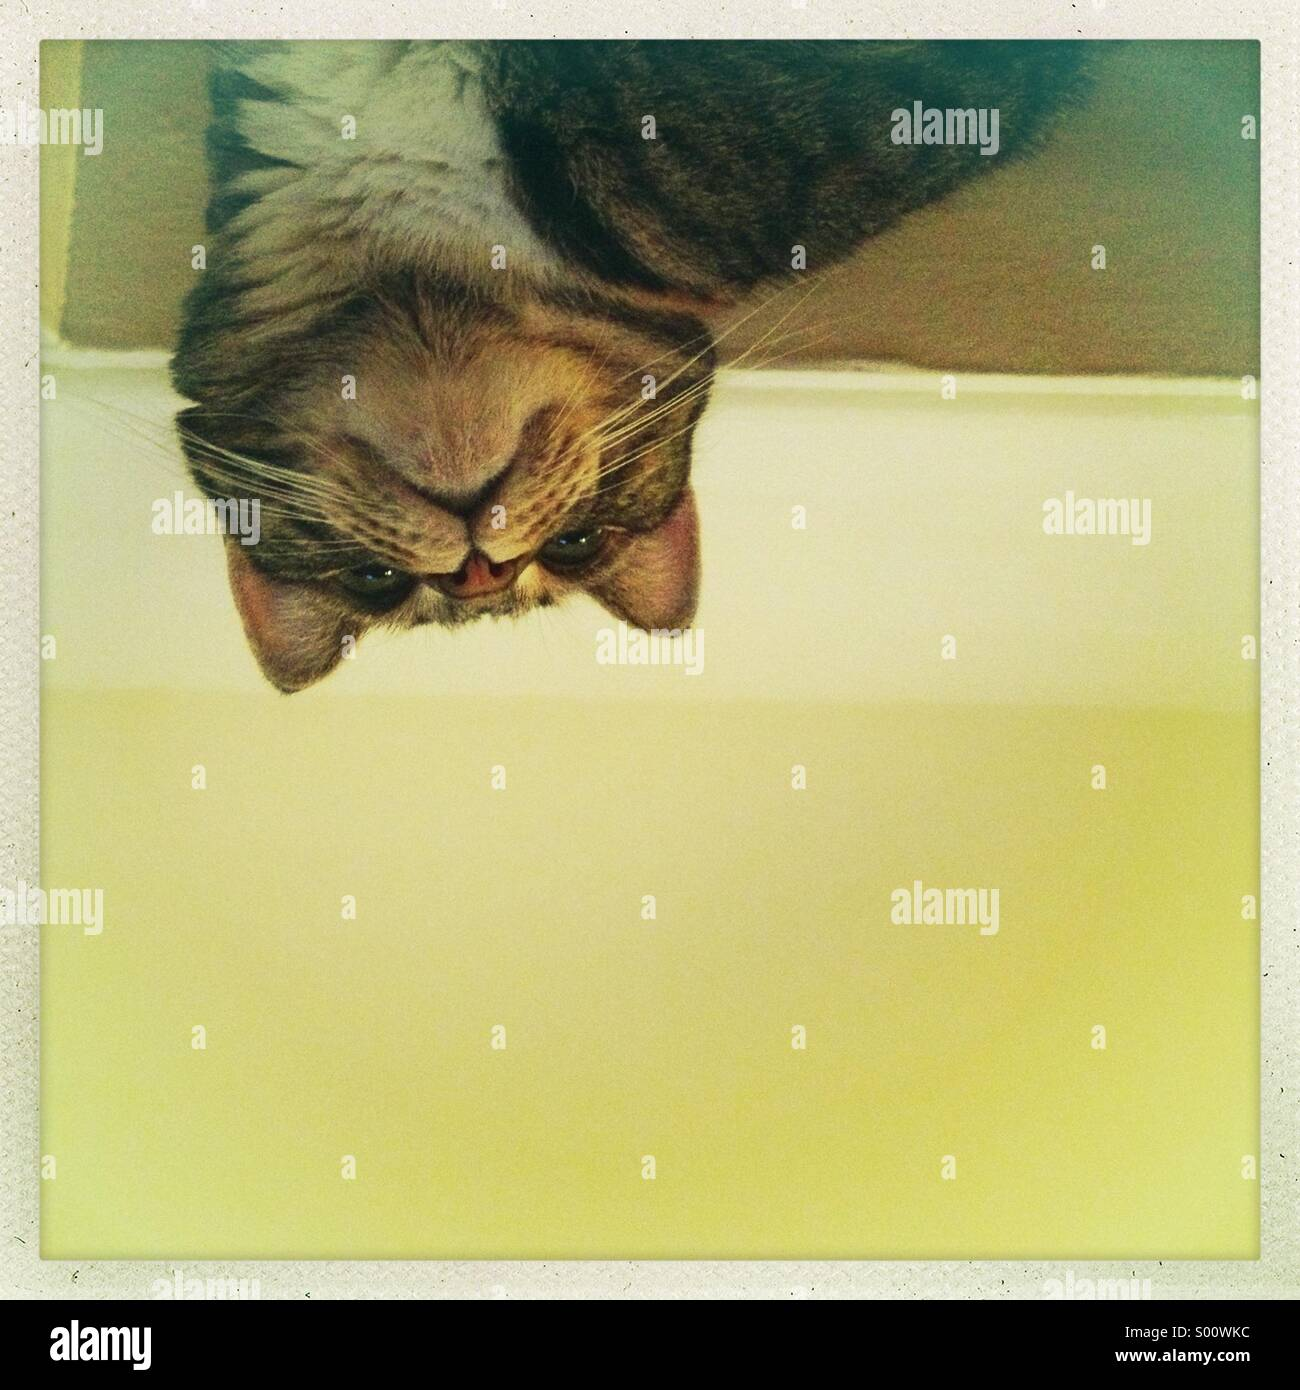 Cat from below - Stock Image